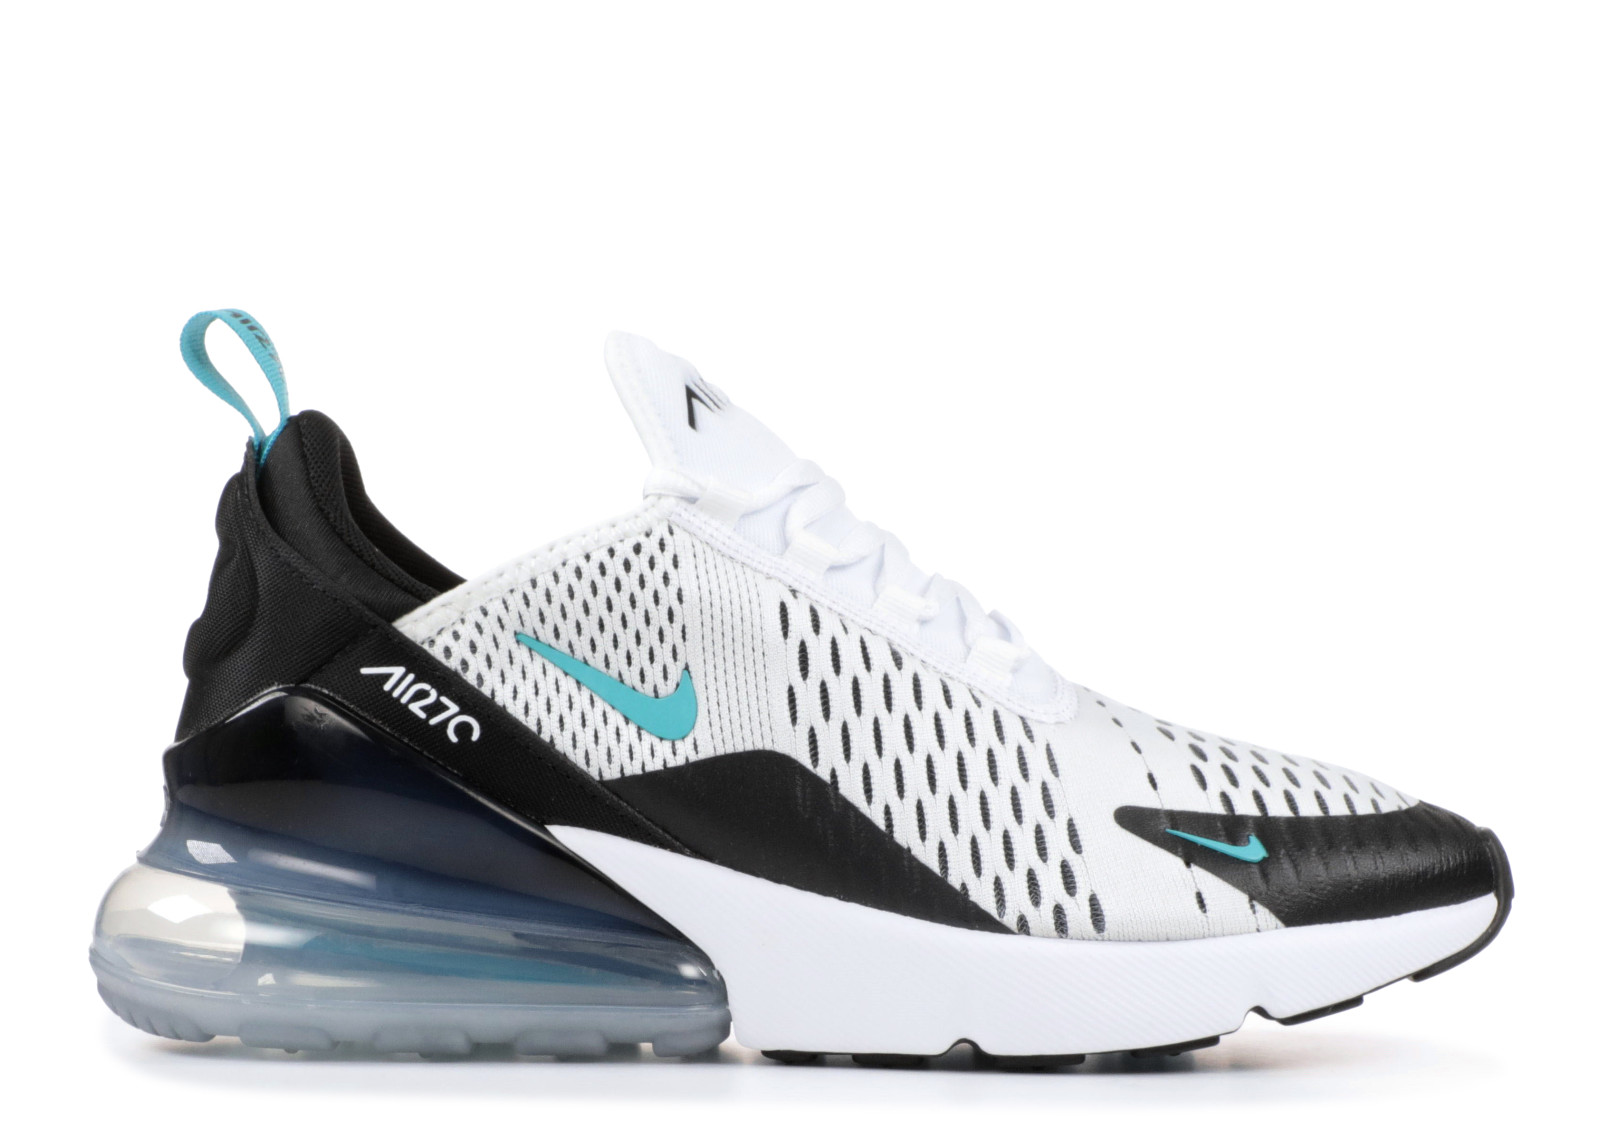 c3e74d041247 Prev Nike Air Max 270 GS Cactus Dust White Cactus Black Kids Shoes 943345-101.  Zoom. Move your mouse over image or click to enlarge